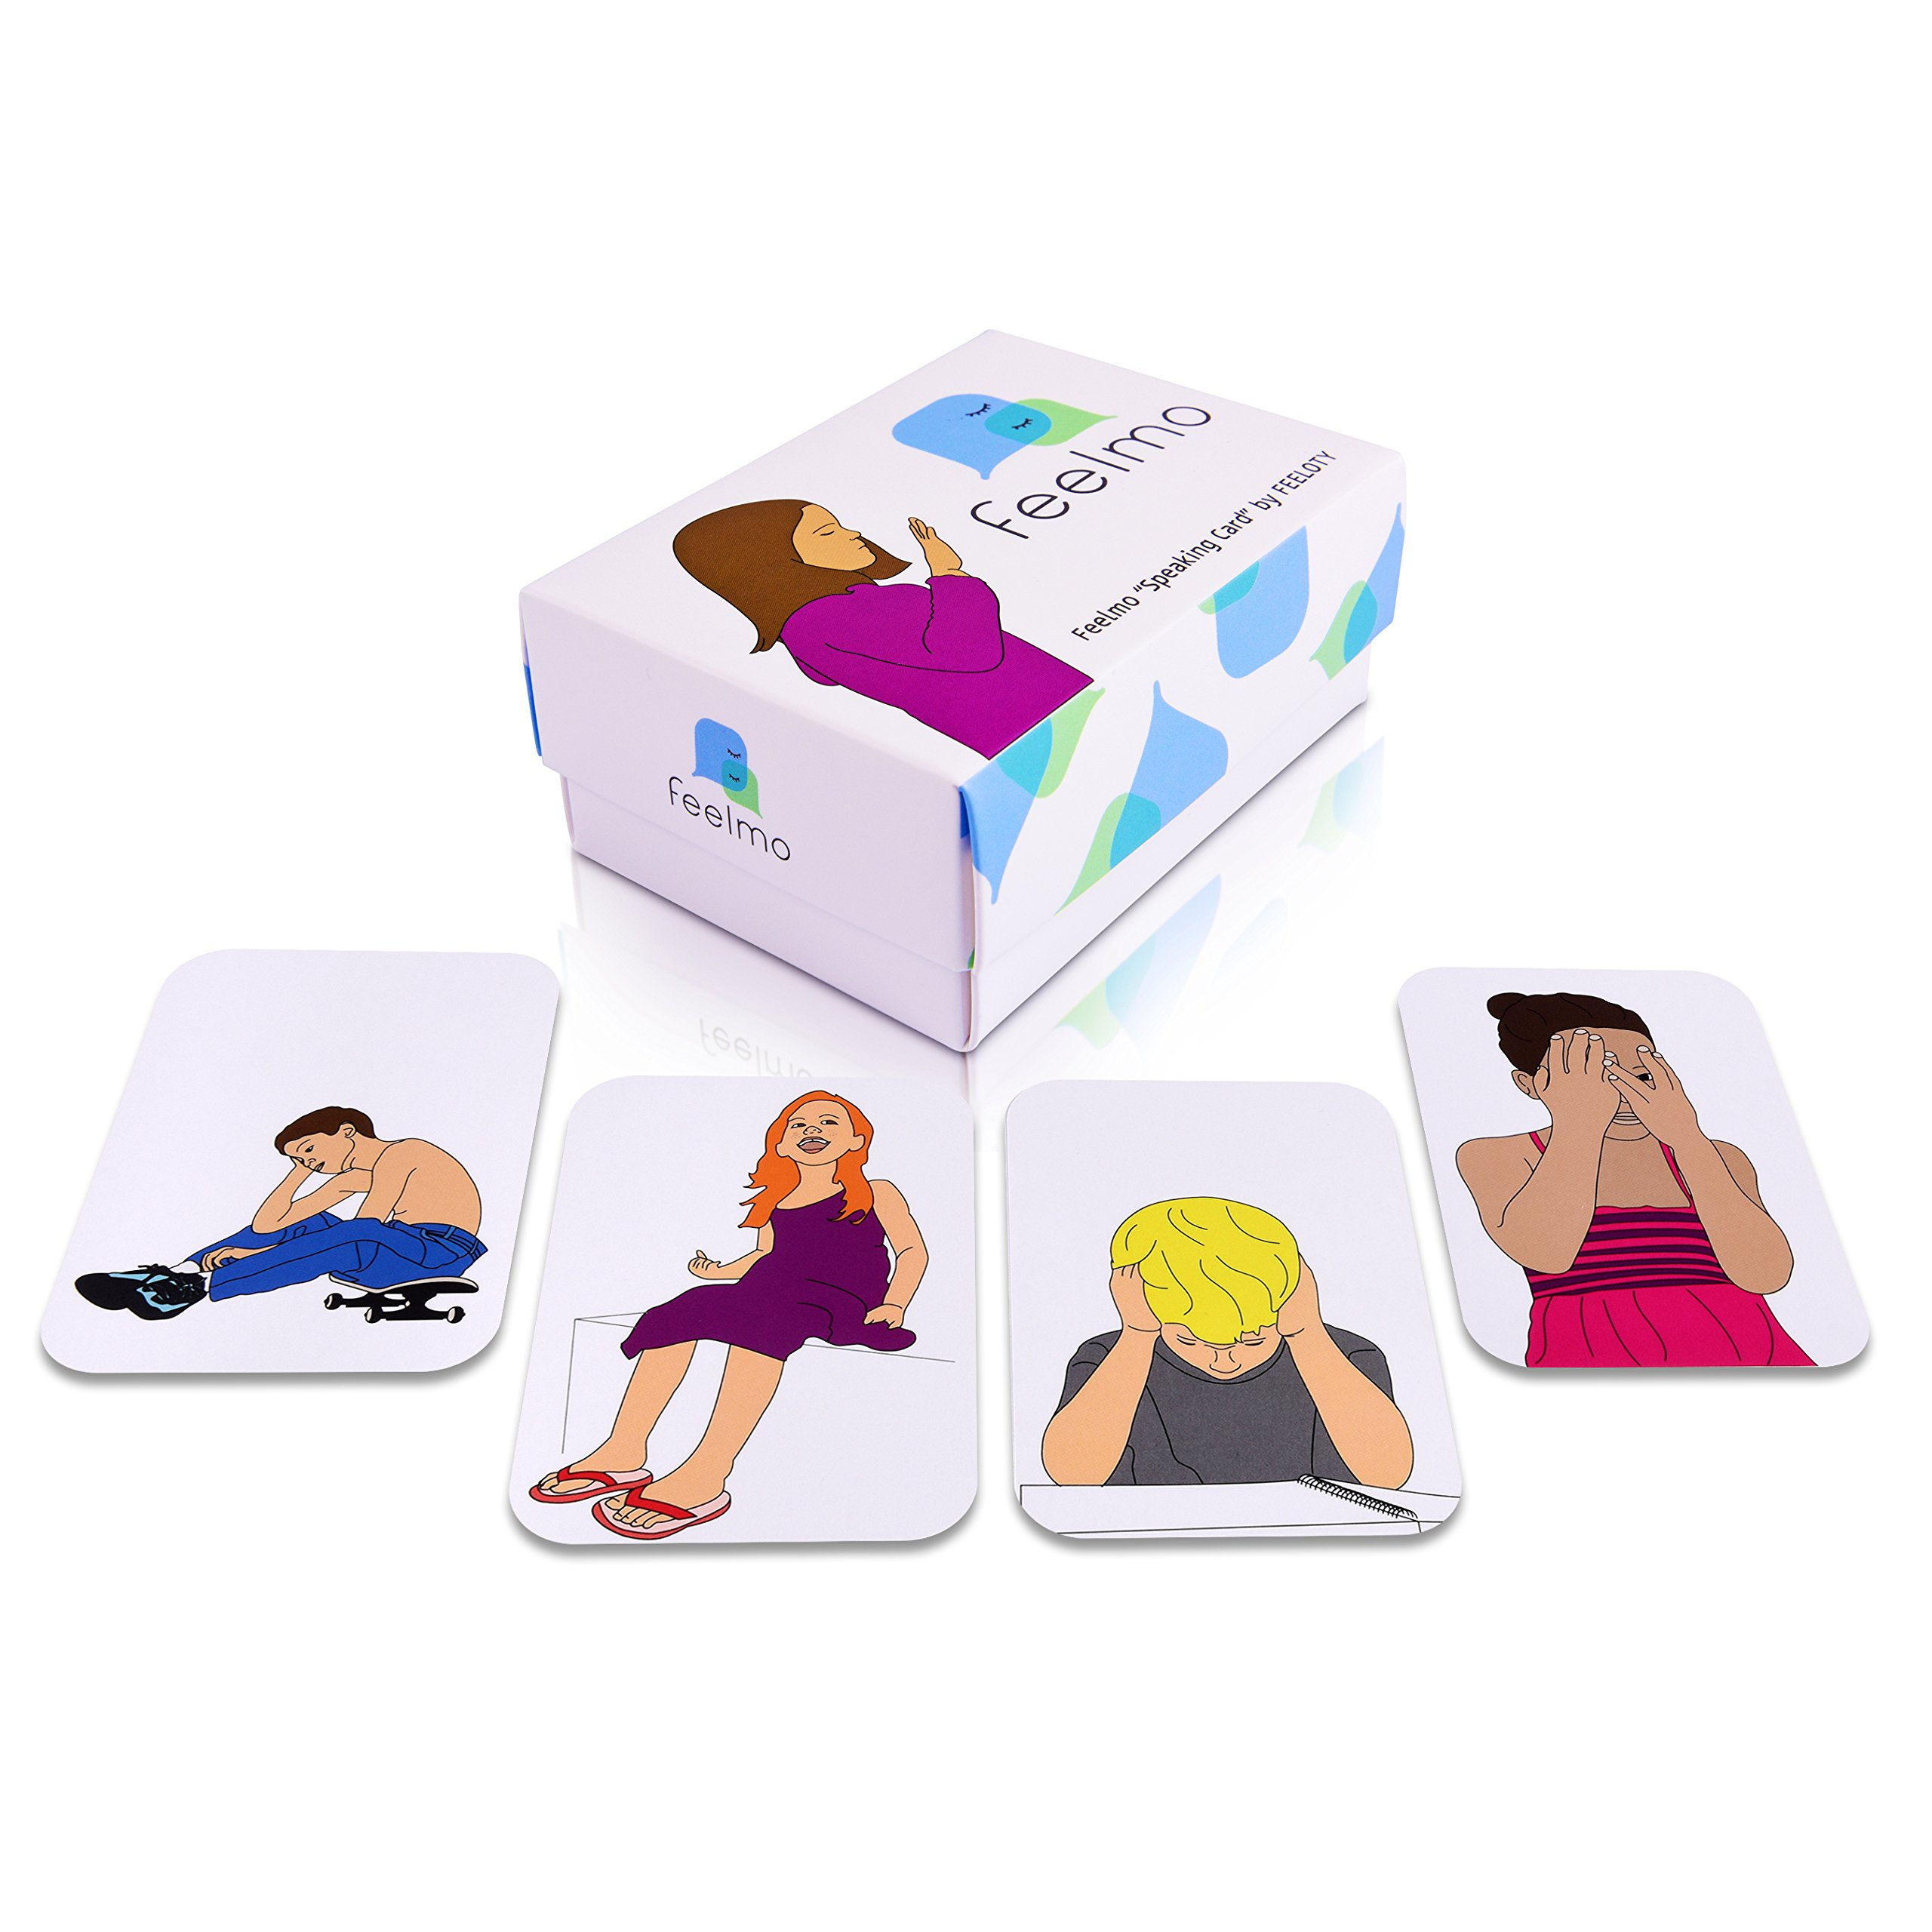 Feelmo Speaking Cards - Social & Emotional Skills Development - Children Educational Therapy Card Game + CBT Instructions Booklet